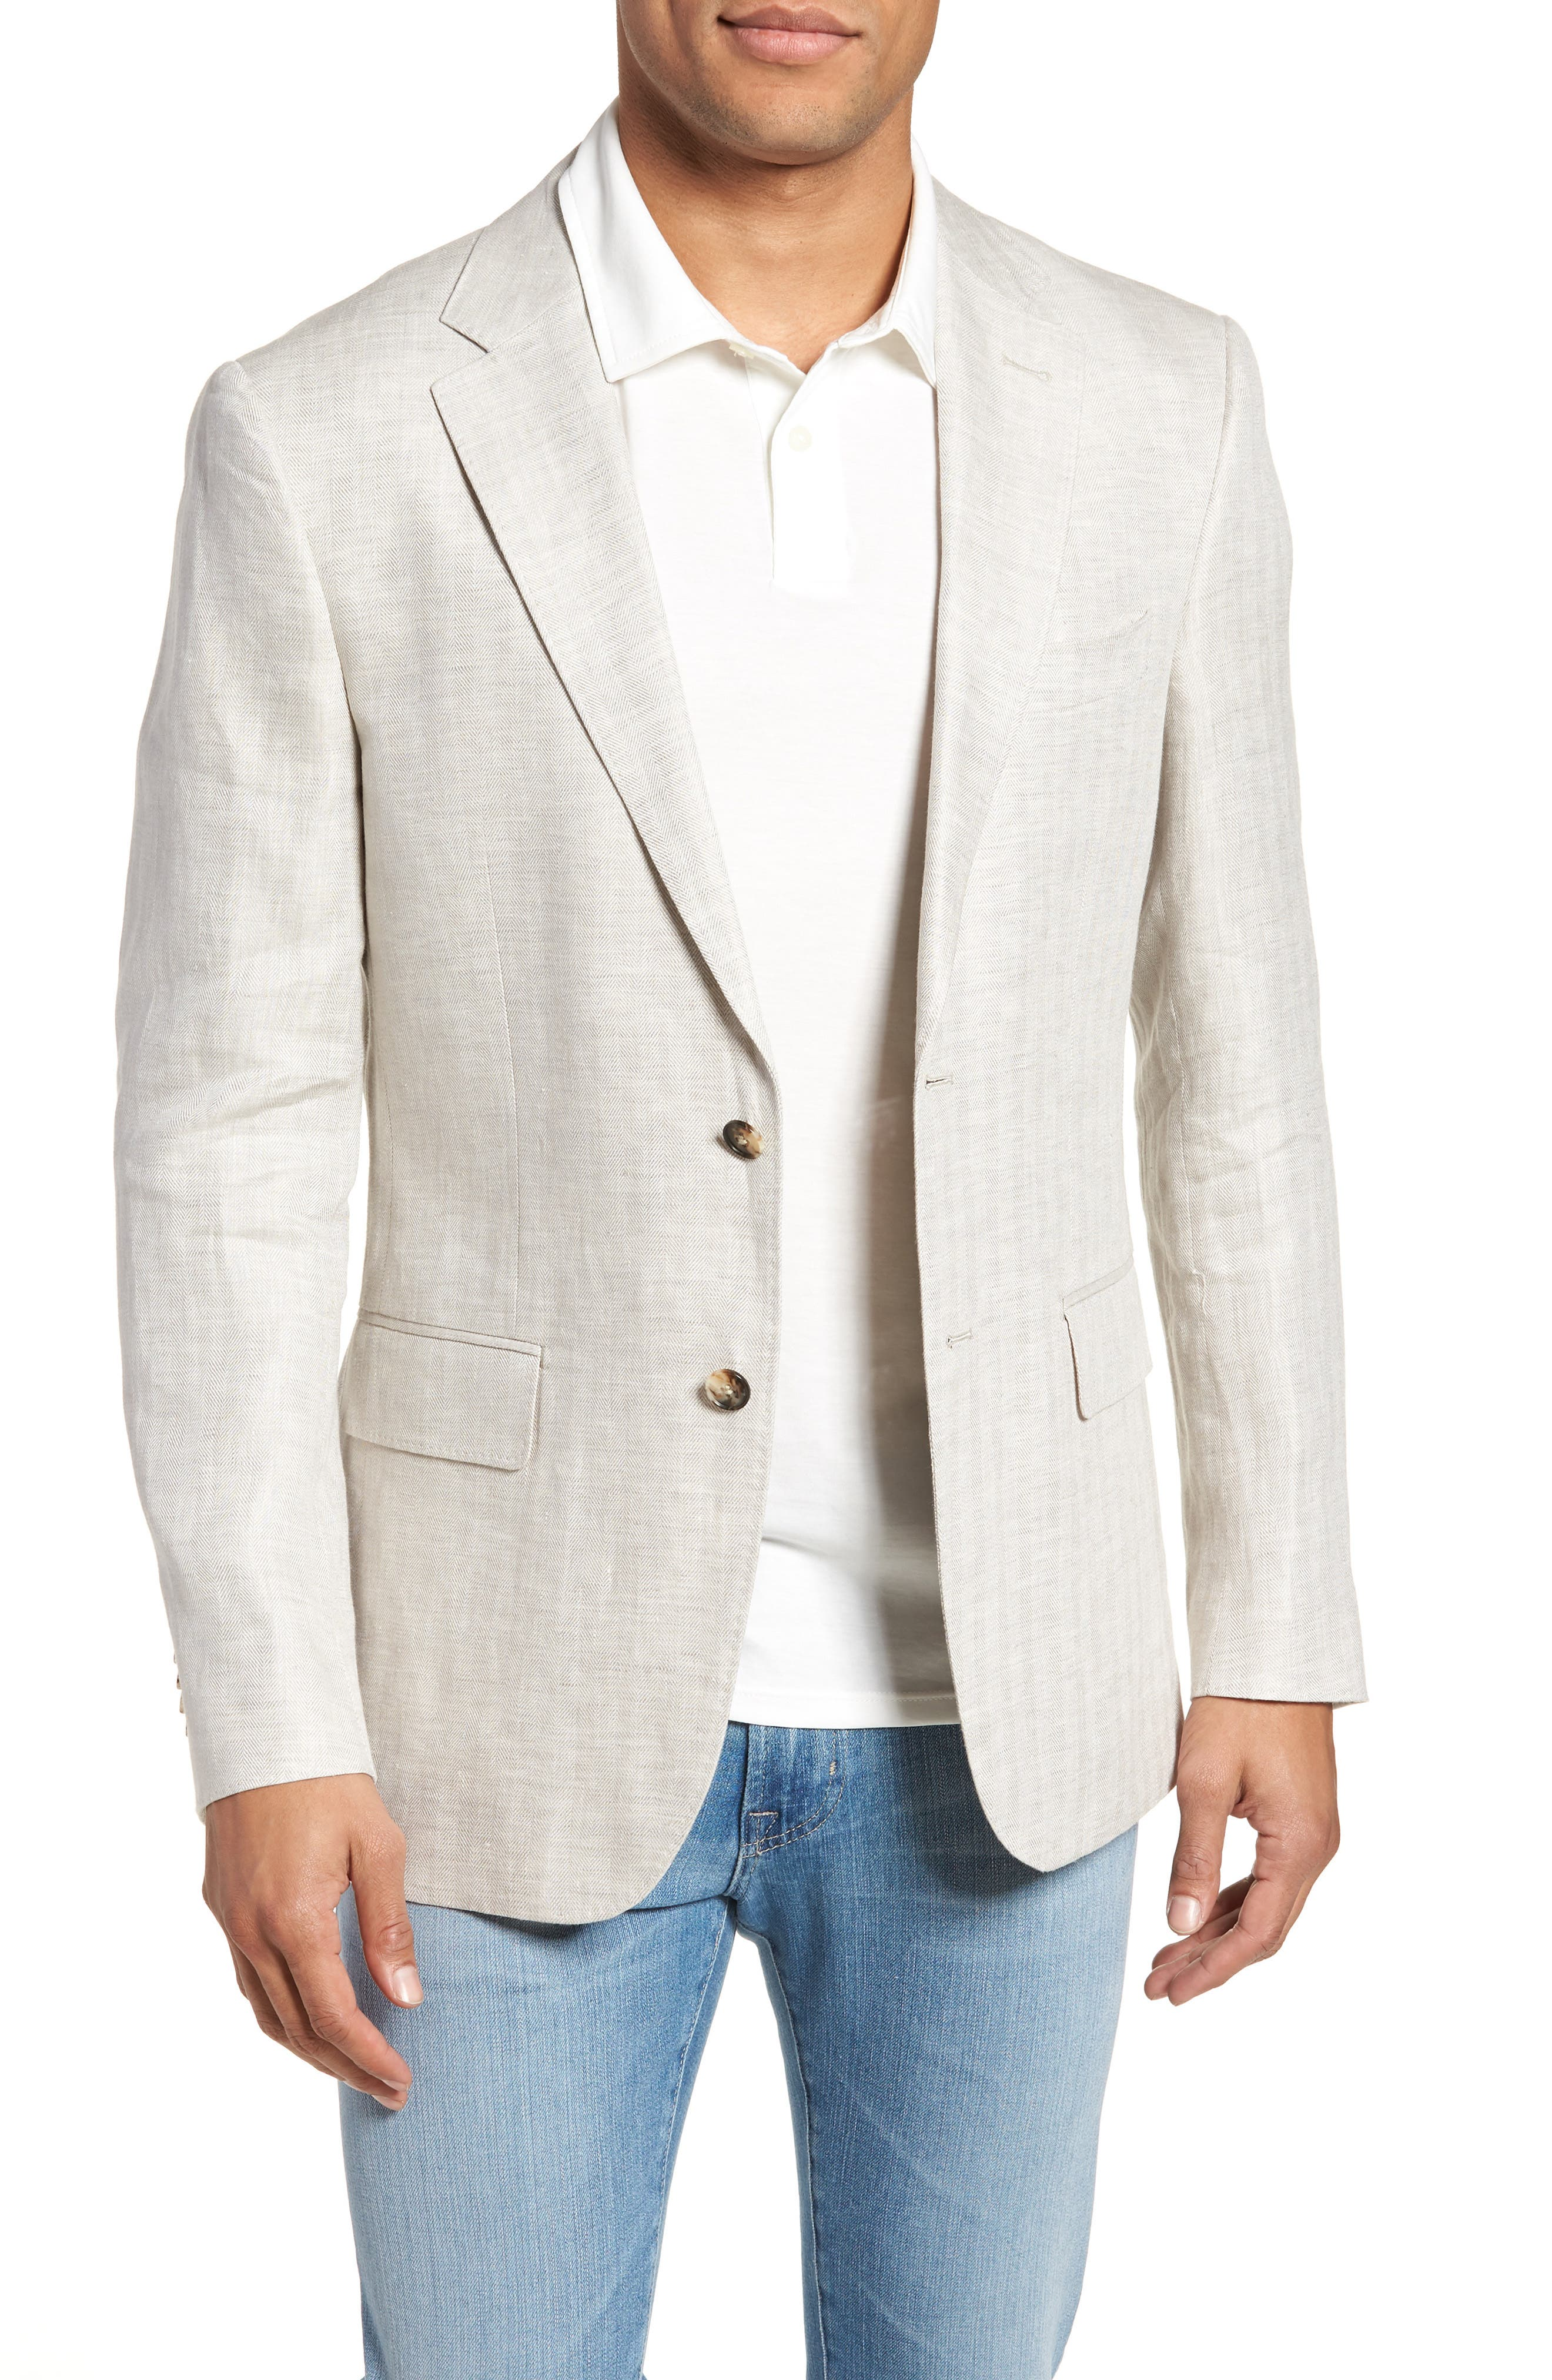 Benson Road Linen Sport Coat,                             Main thumbnail 1, color,                             NATURAL